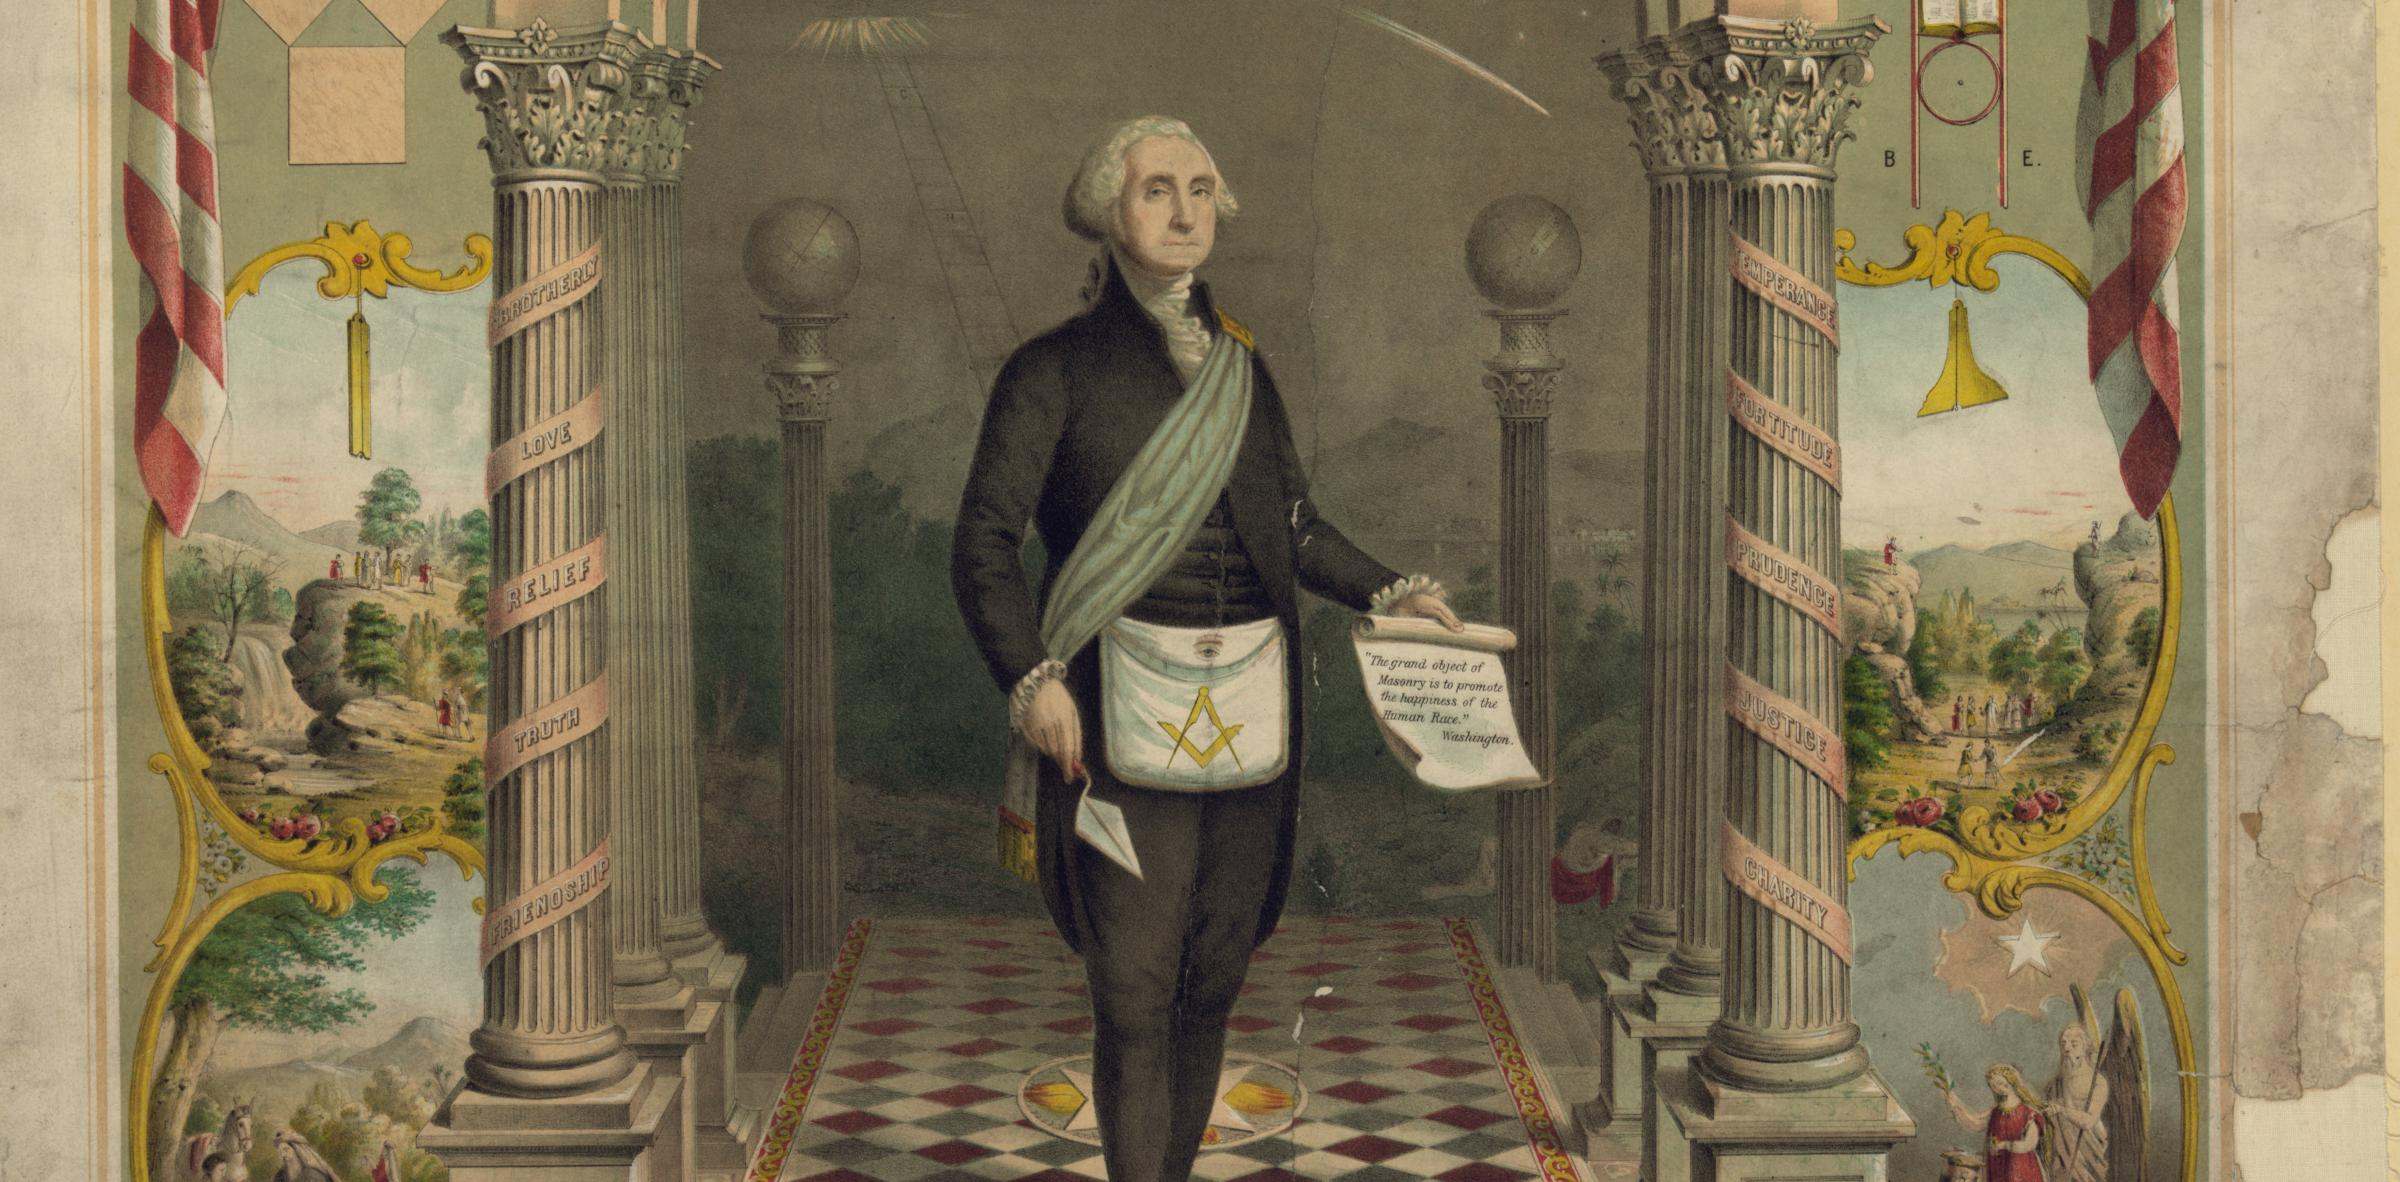 George Washington is just one name on a long list of famous freemasons